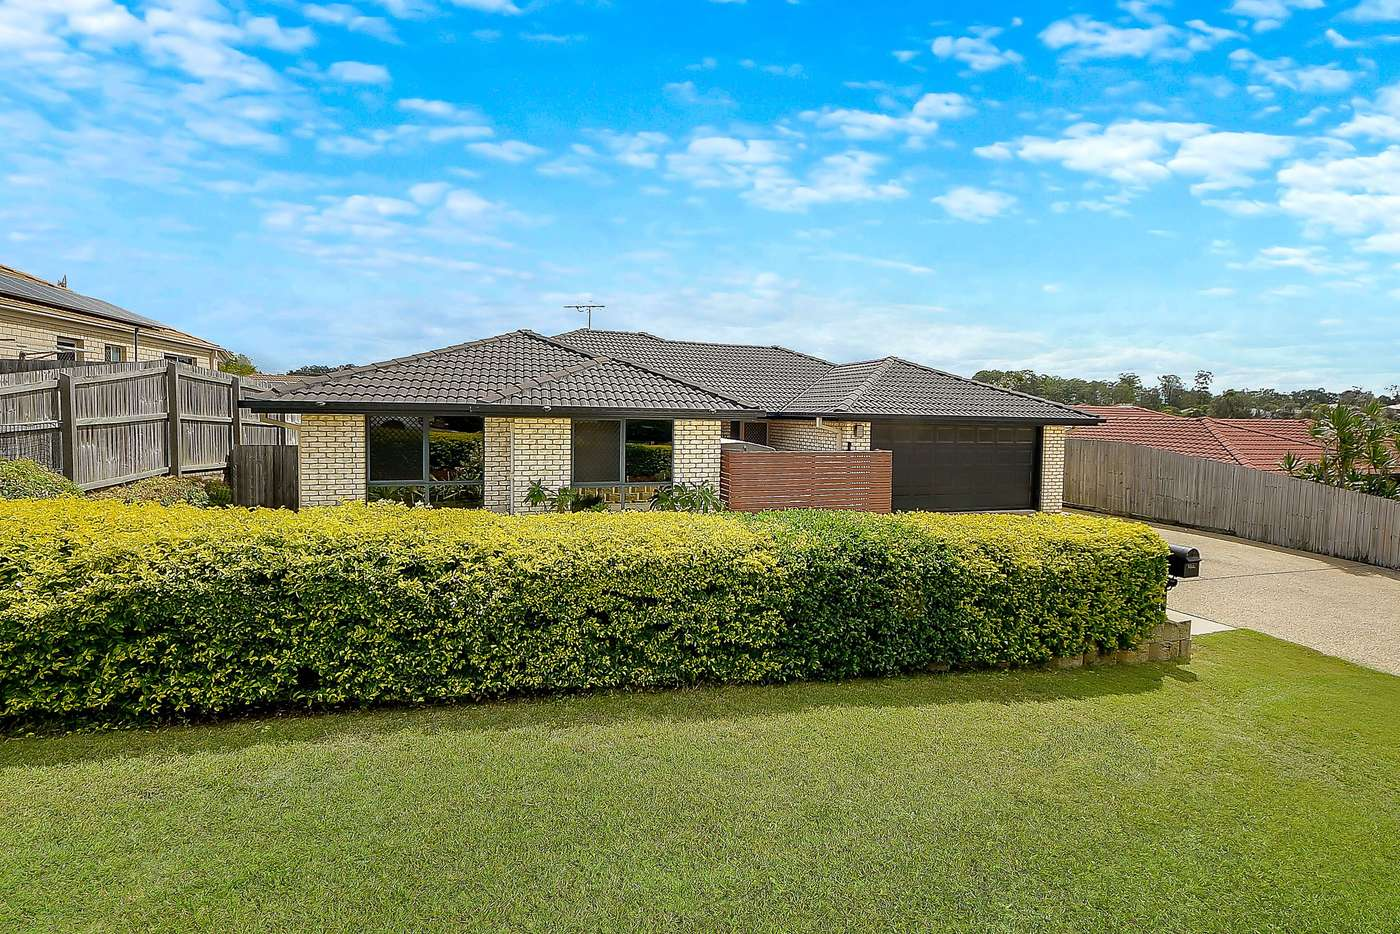 Main view of Homely house listing, 4 Hillary Drive, Warner QLD 4500